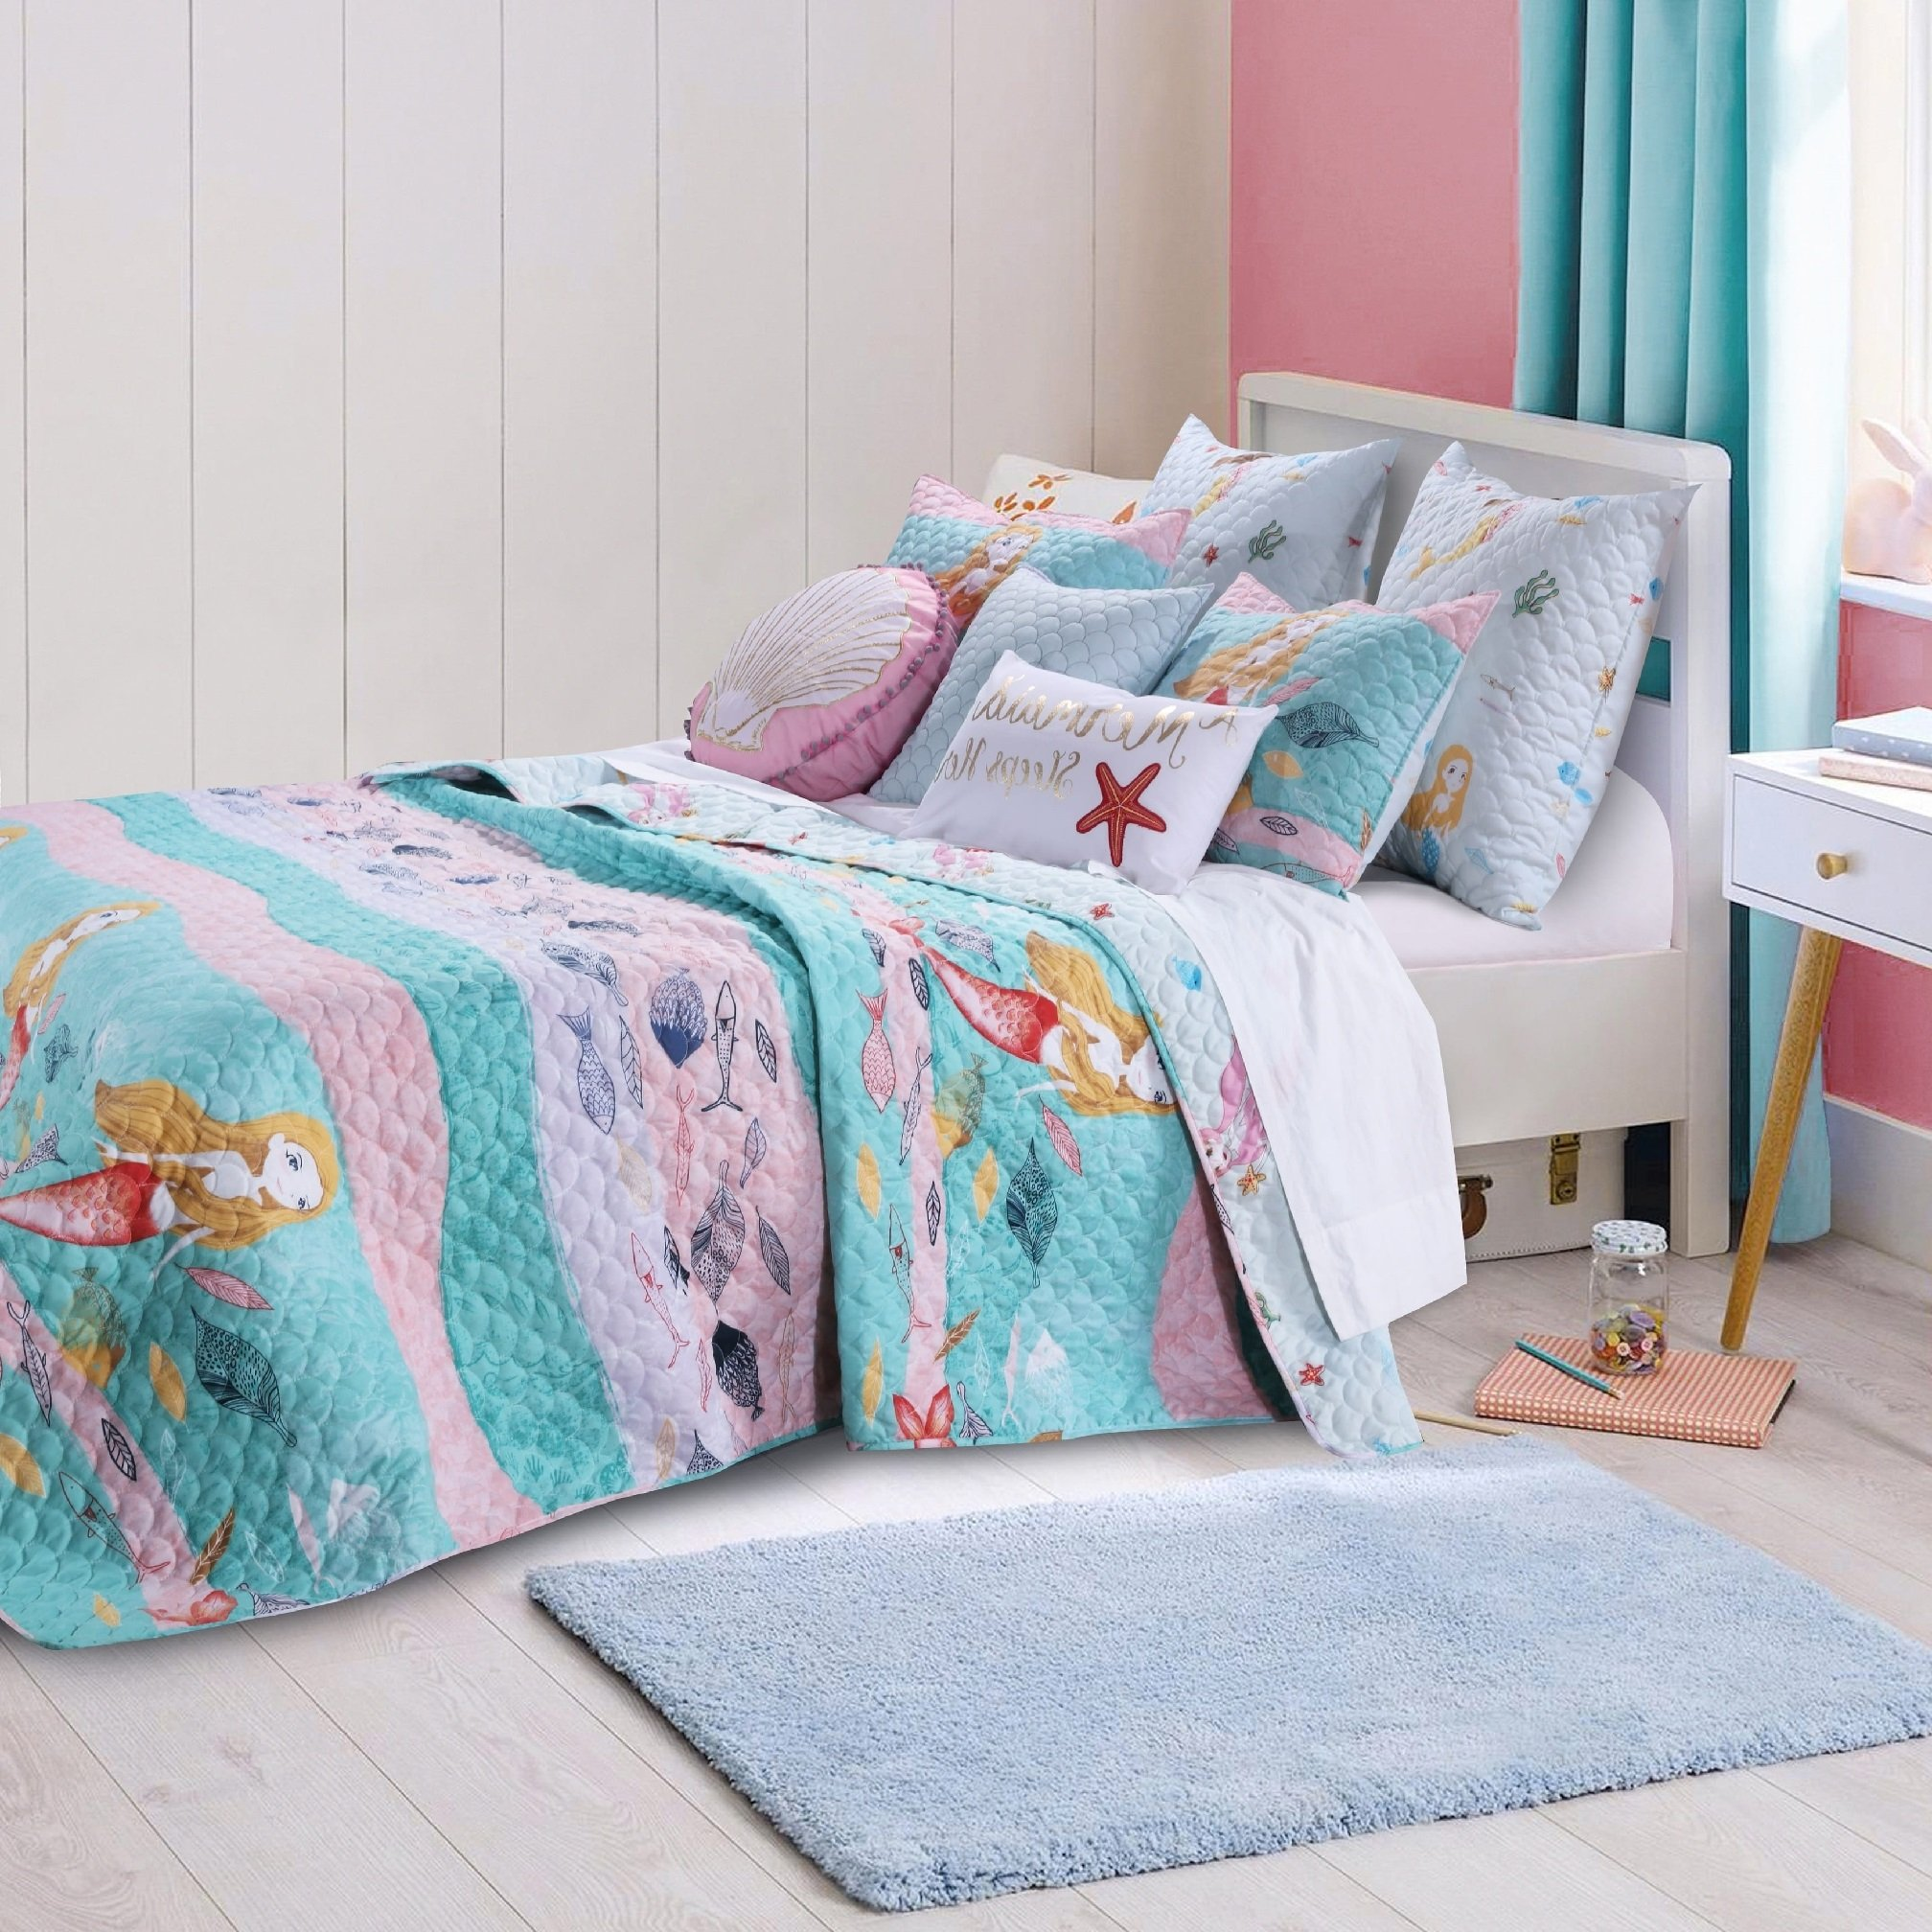 2 Piece Underwater Sea Mermaids Pattern Reversible Quilt Set Twin Size, Printed Coastal Starfish Fish Seashells Seahorse Corals Bedding, Whimsical Modern Nautical Print, Fun Girls Bedroom, Pink, Blue